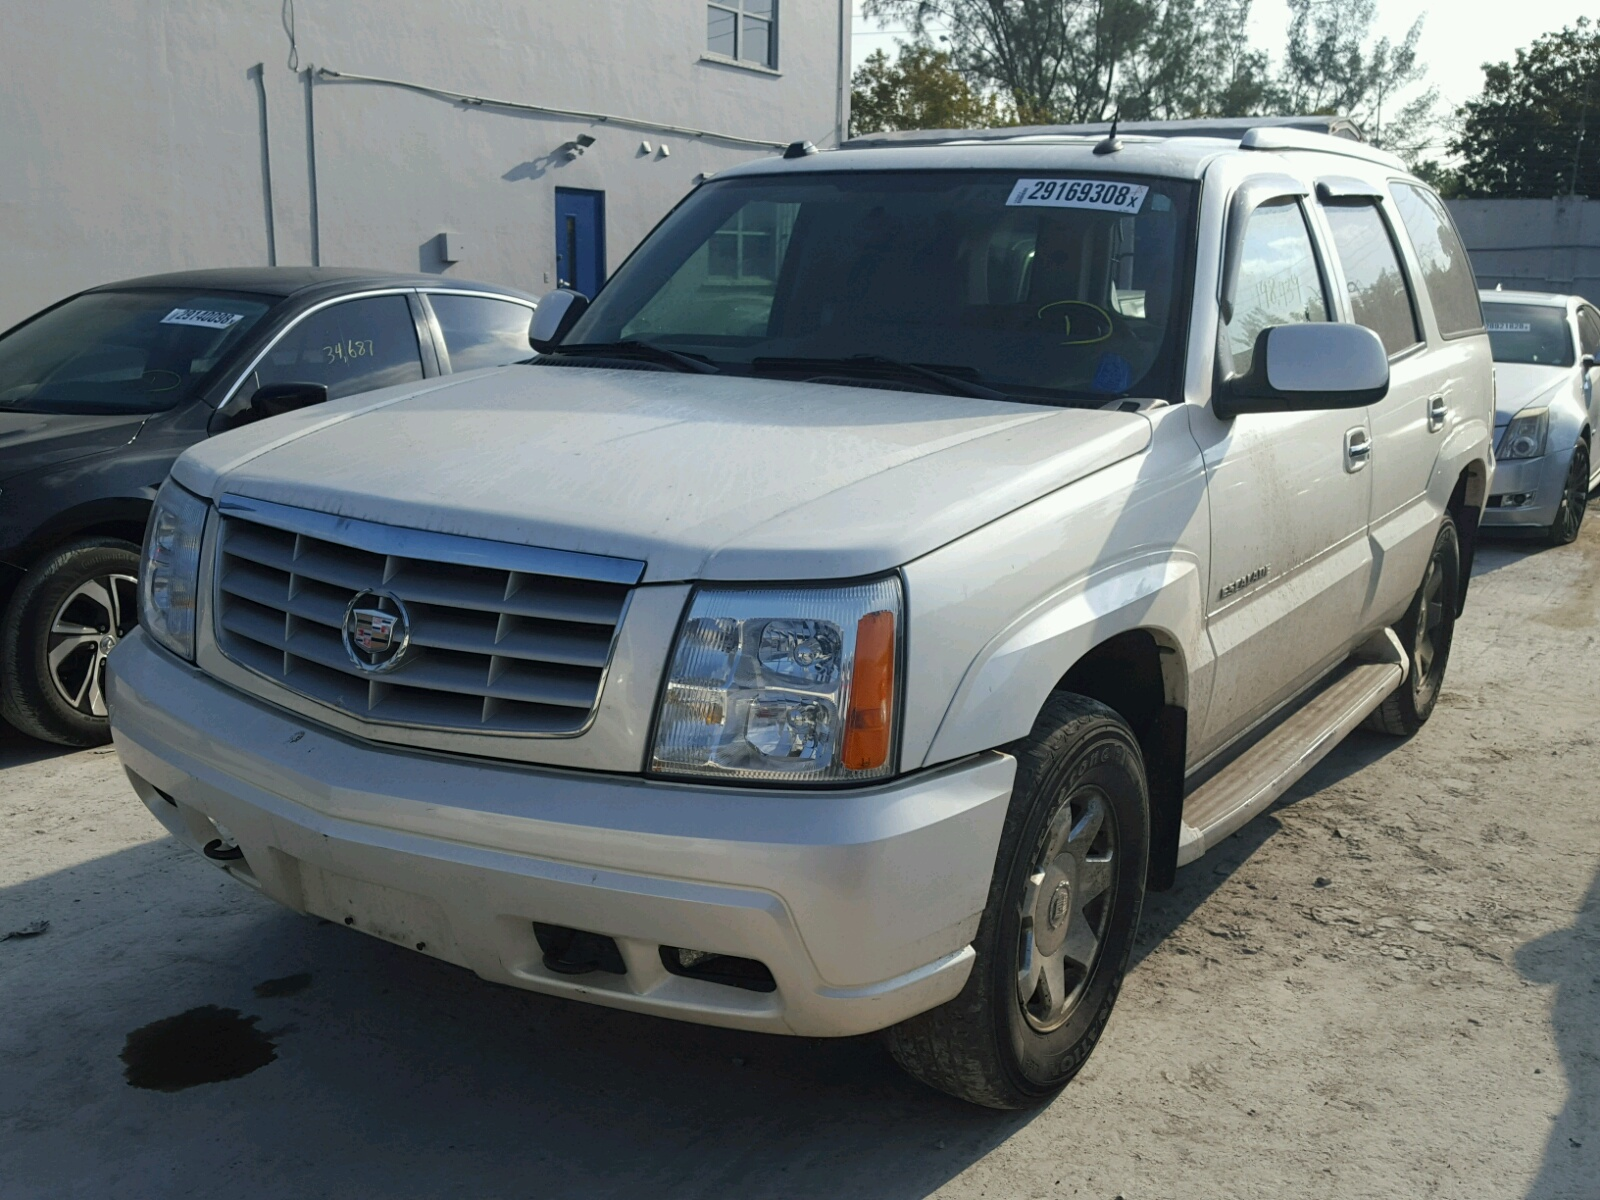 septemb suv sale image esv for auction sold item cadillac escalade